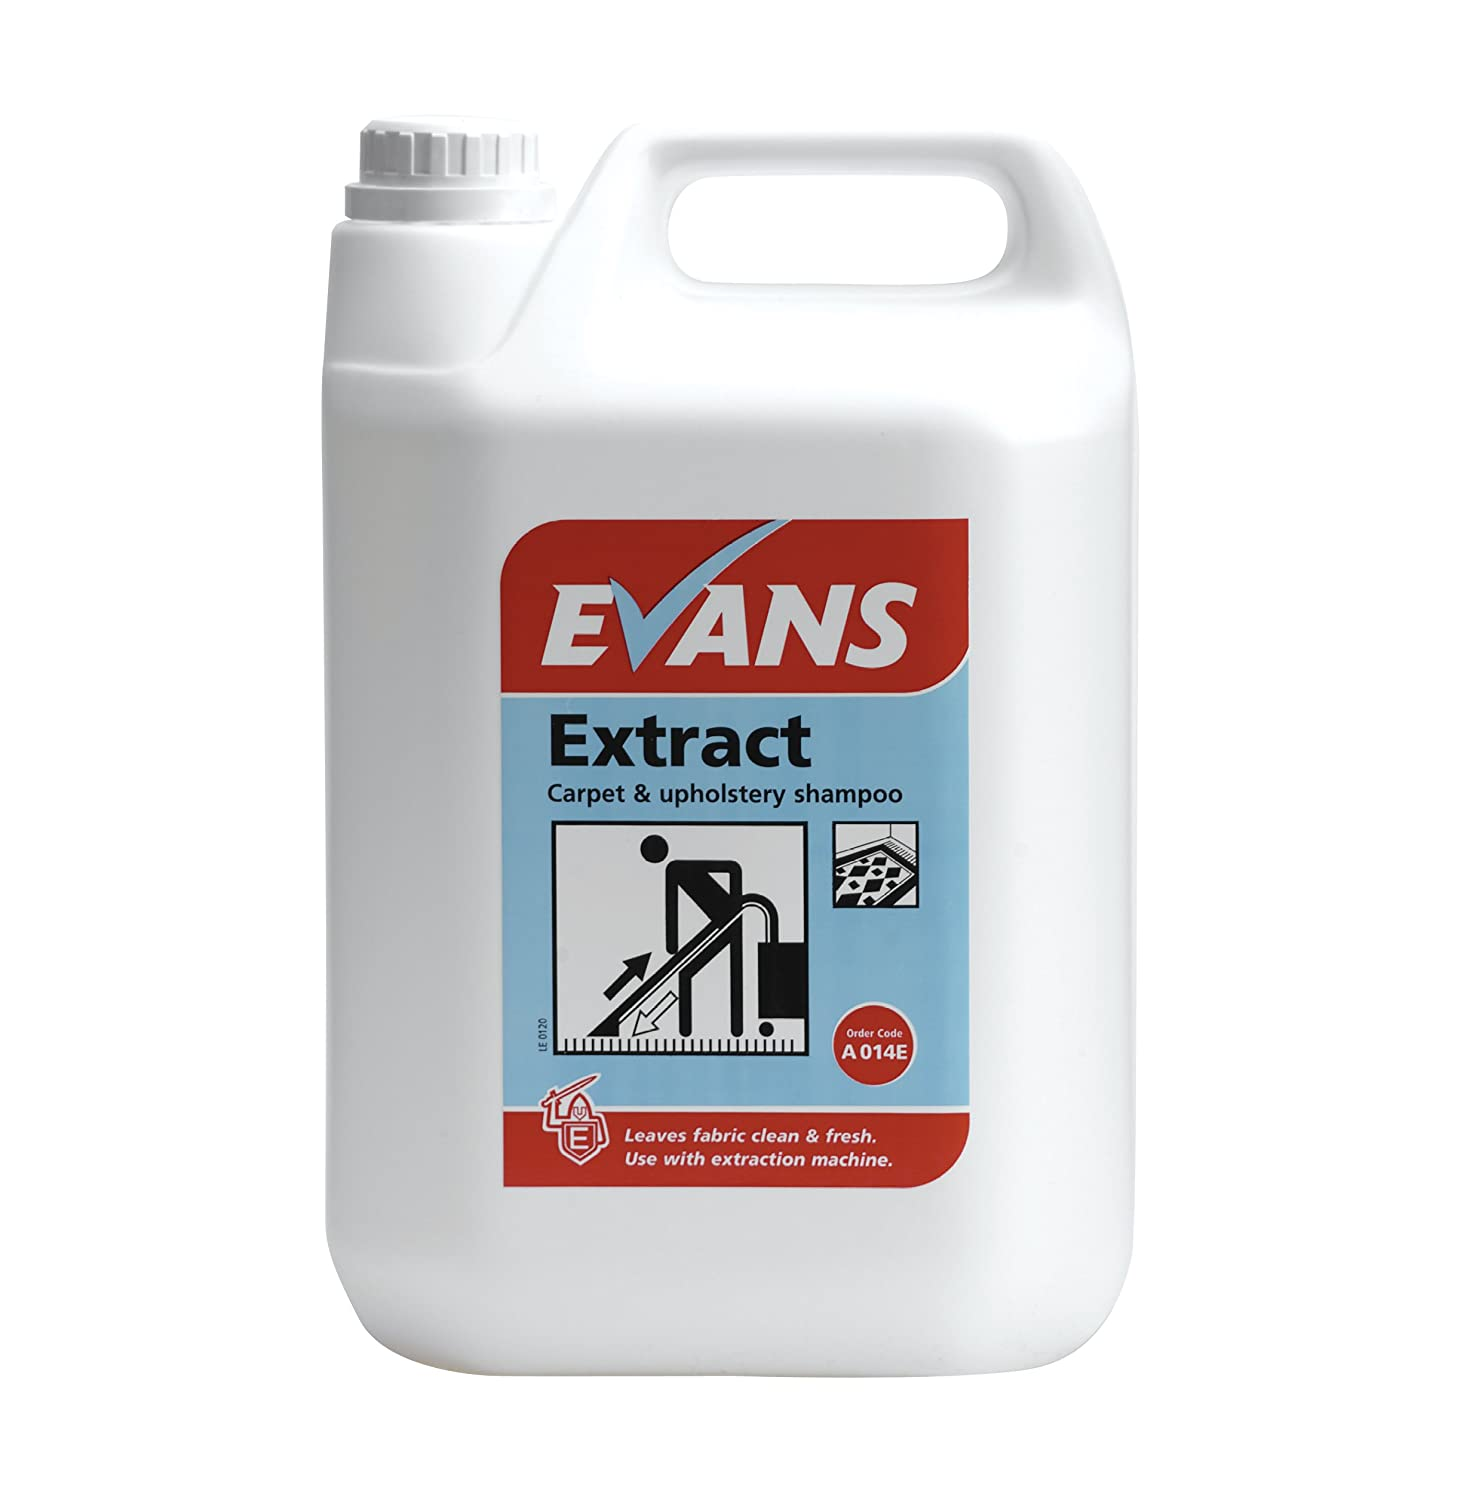 Evans Vanodine BEV002-5 Extract Pro Carpet and Upholstery Shampoo, 5 L (Pack of 2)